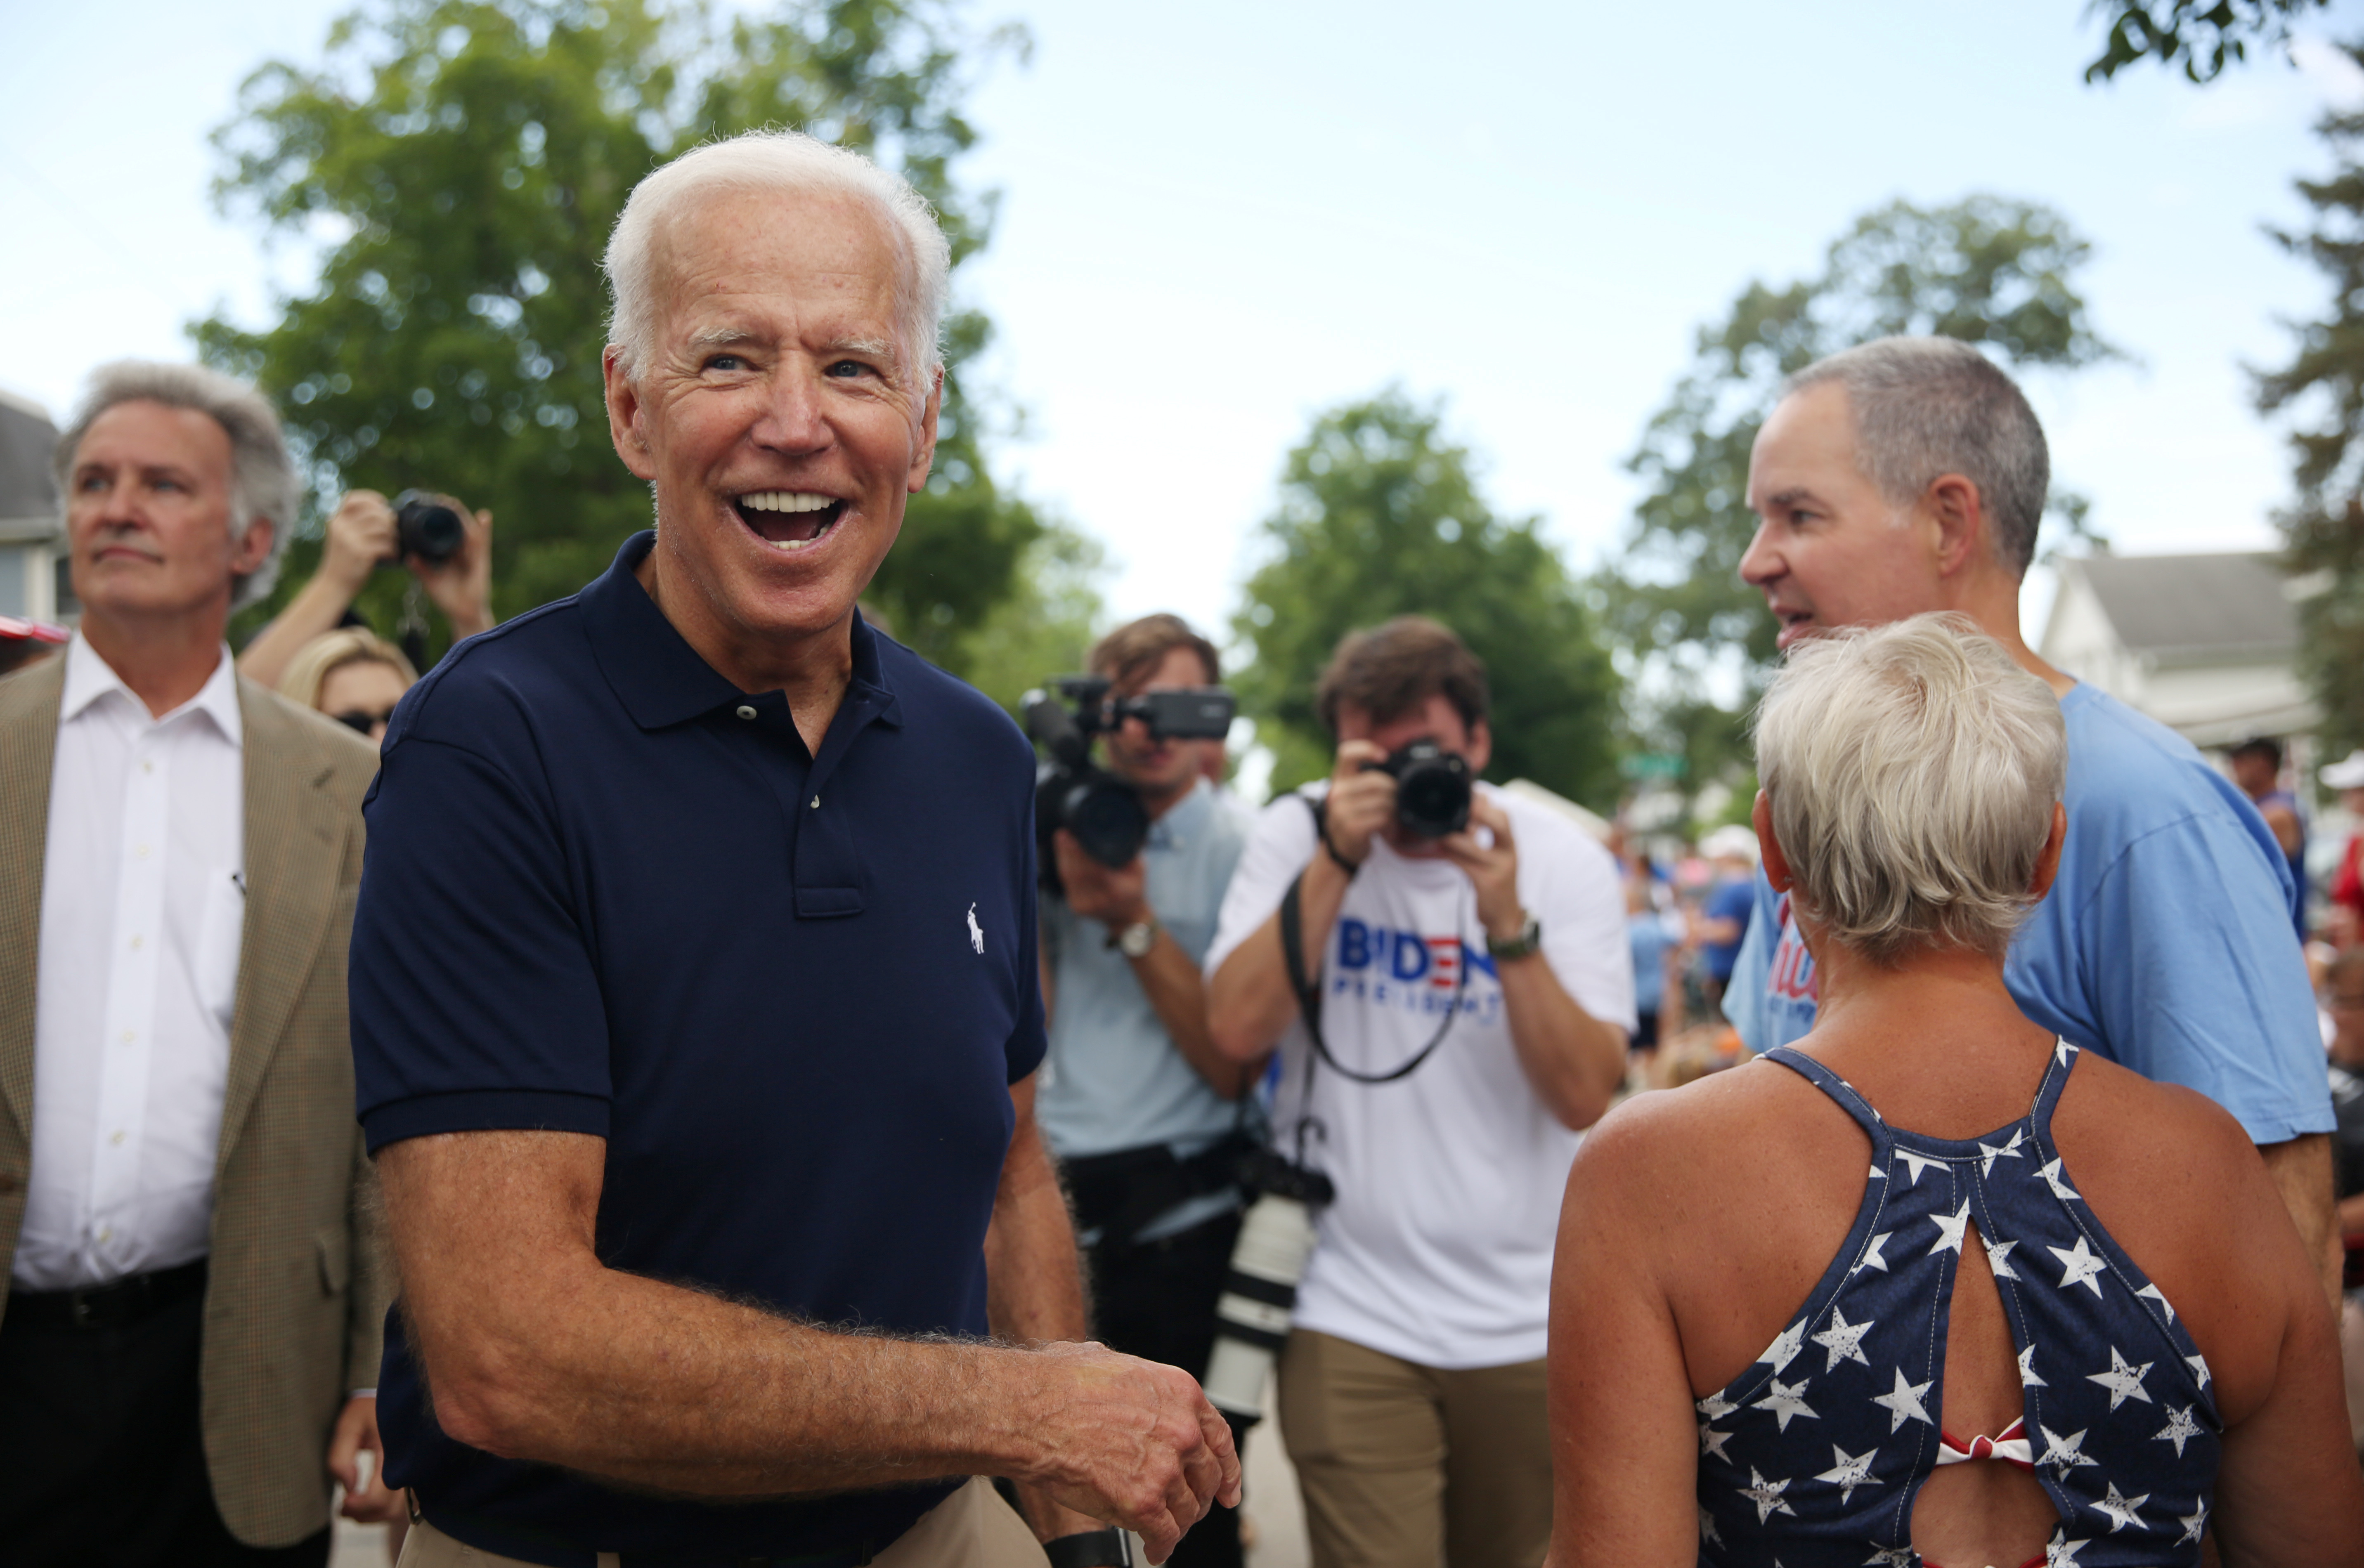 Democratic 2020 U.S. presidential candidate and former Vice President Joe Biden greets supporters at the Independence Day parade in Independence, Iowa